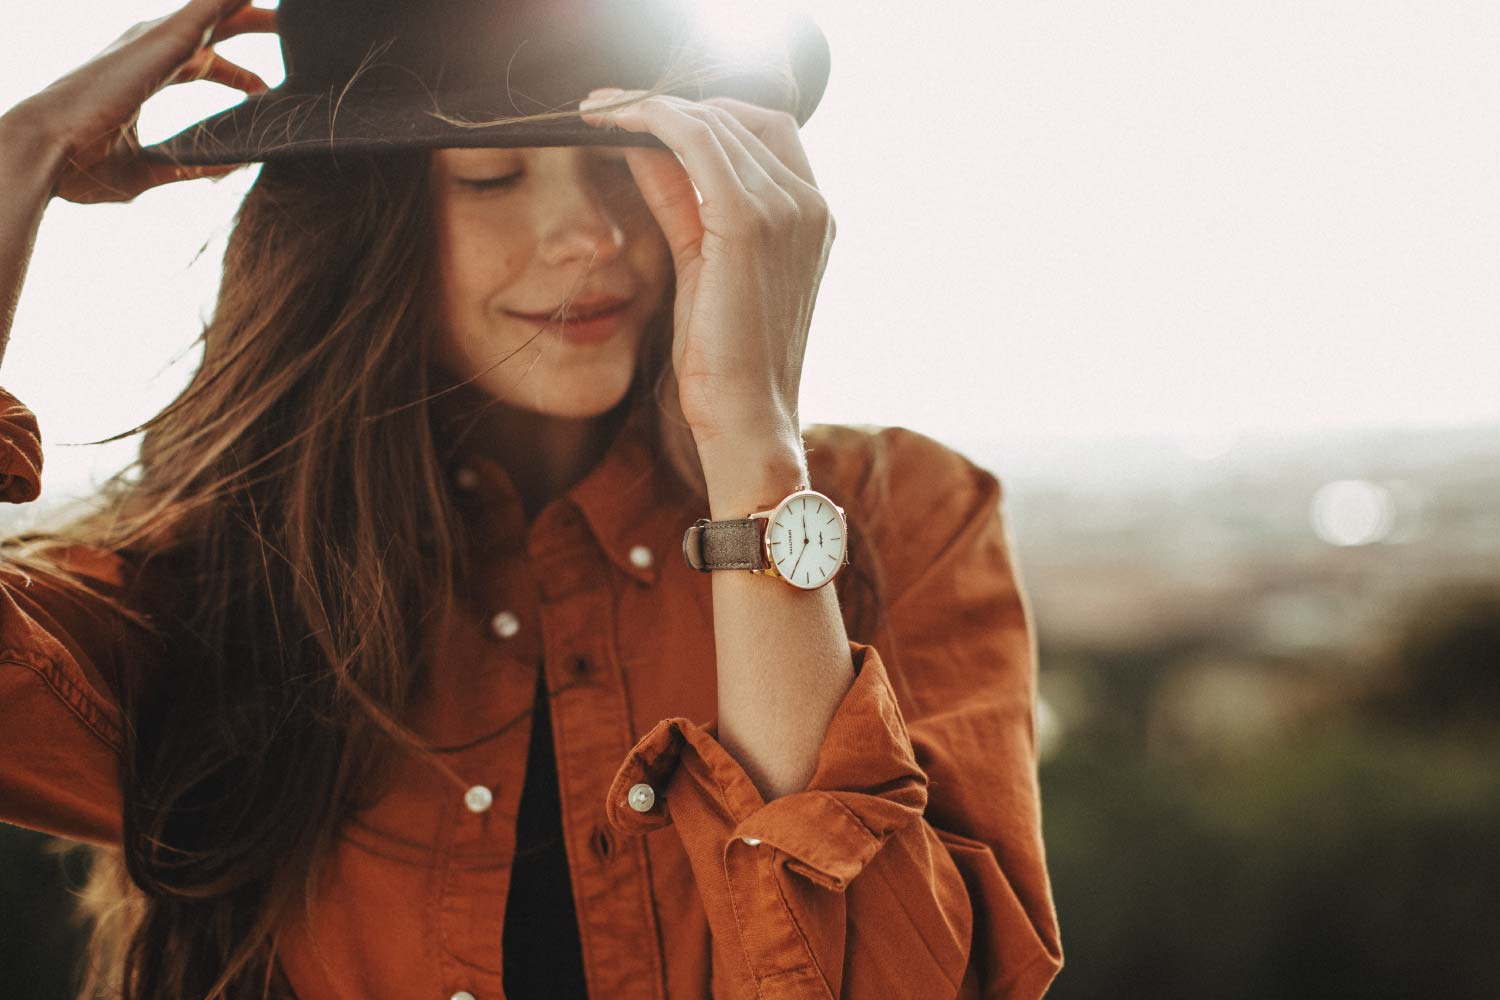 Woman with black hat and orange jacket wearing the rose gold Aquafino watch with charcoal strap